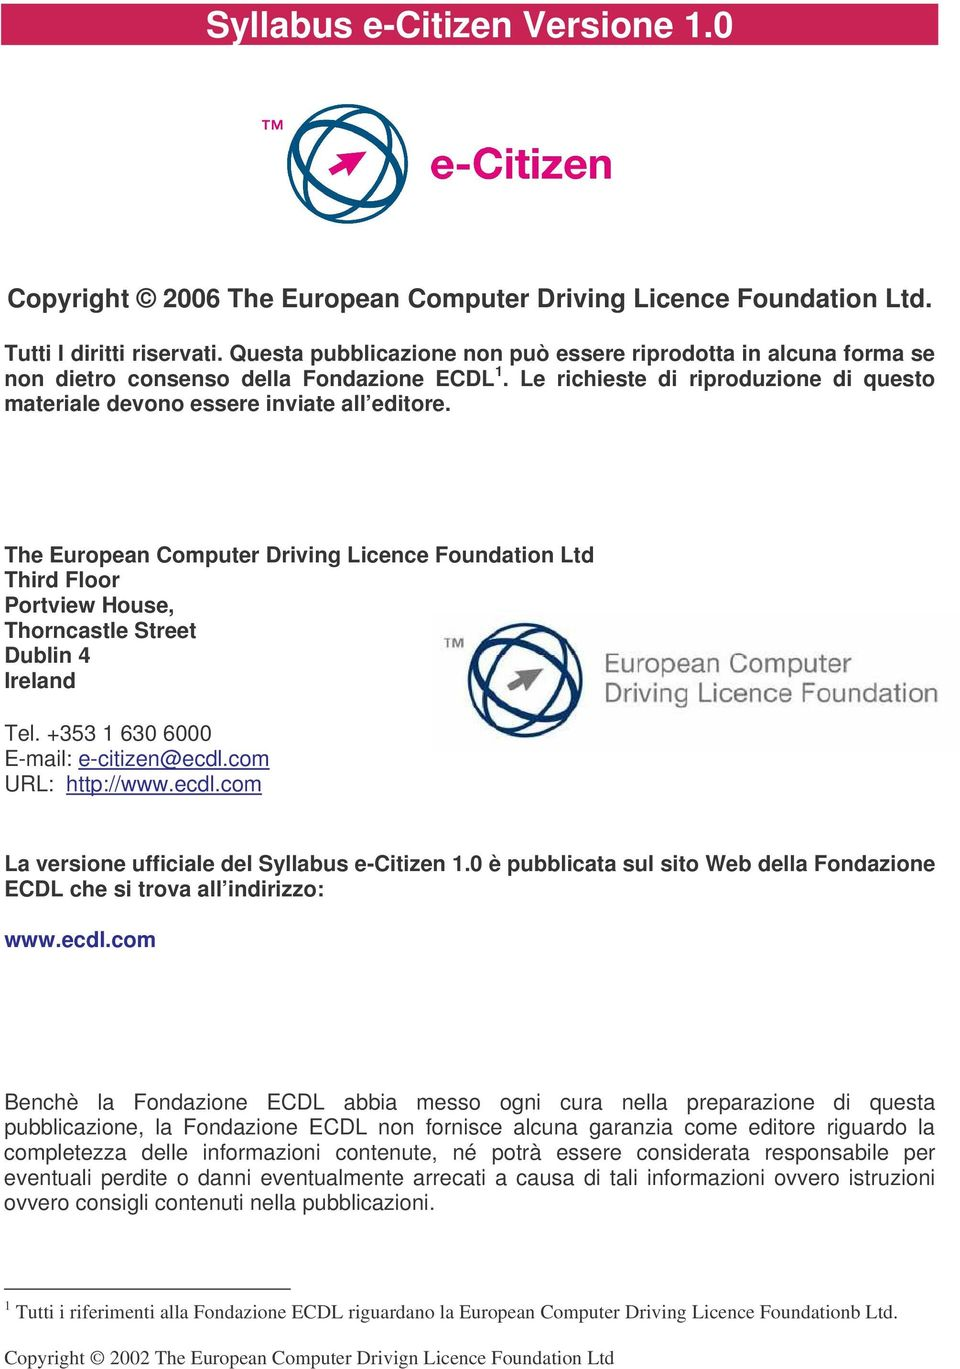 The European Computer Driving Licence Foundation Ltd Third Floor Portview House, Thorncastle Street Dublin 4 Ireland Tel. +353 1 630 6000 E-mail: e-citizen@ecdl.